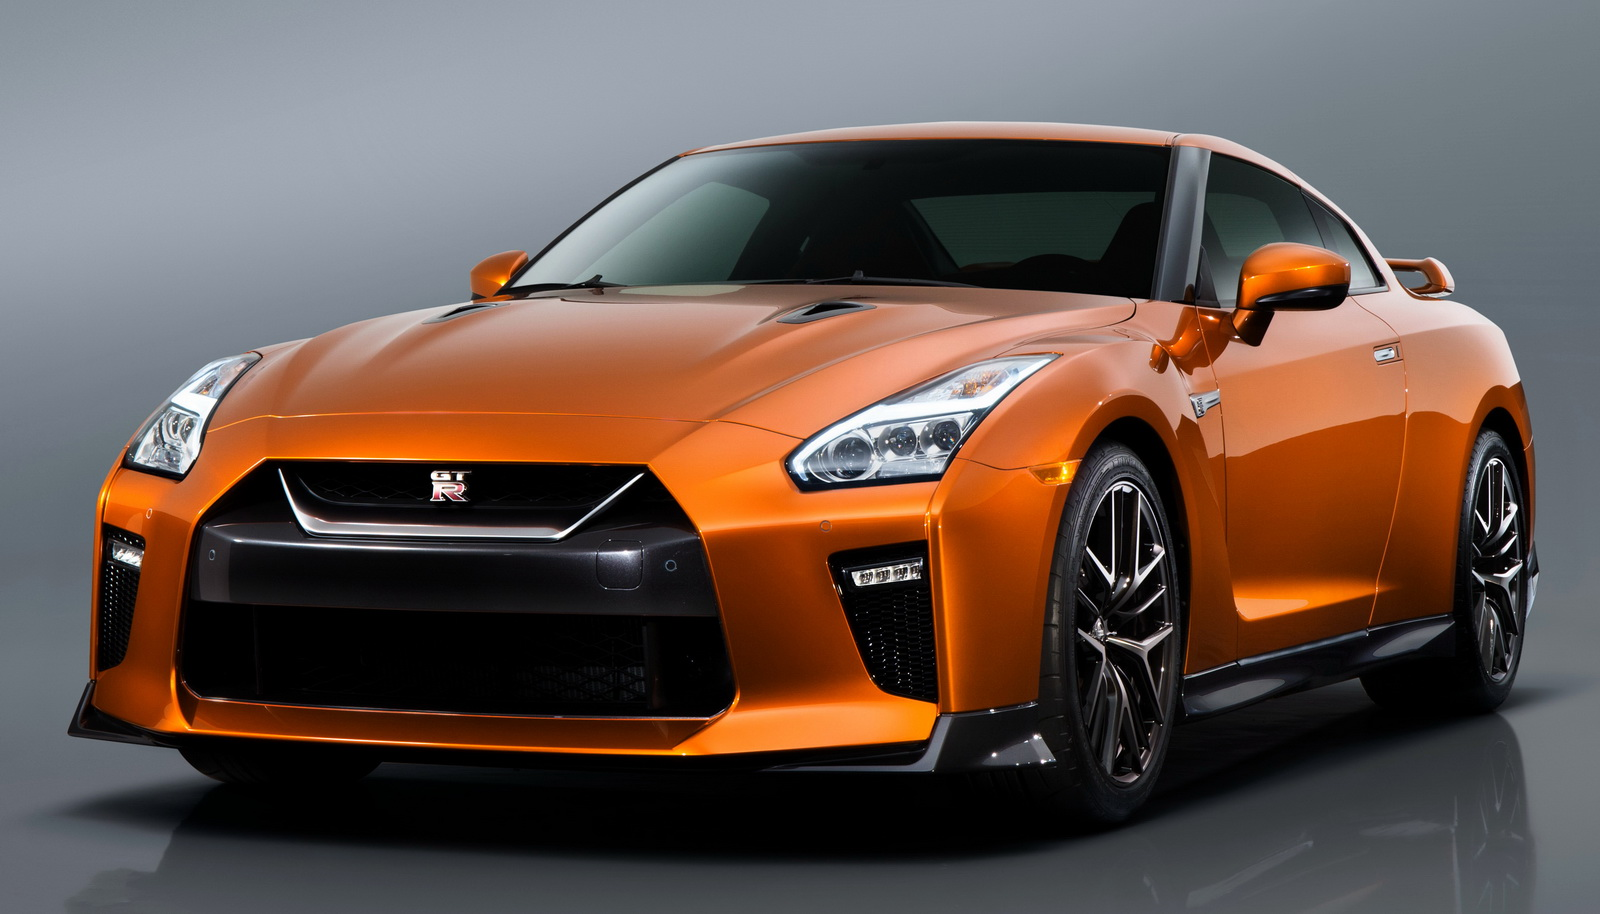 Nissan GT-R I Restyling 3 2016 - now Coupe #8